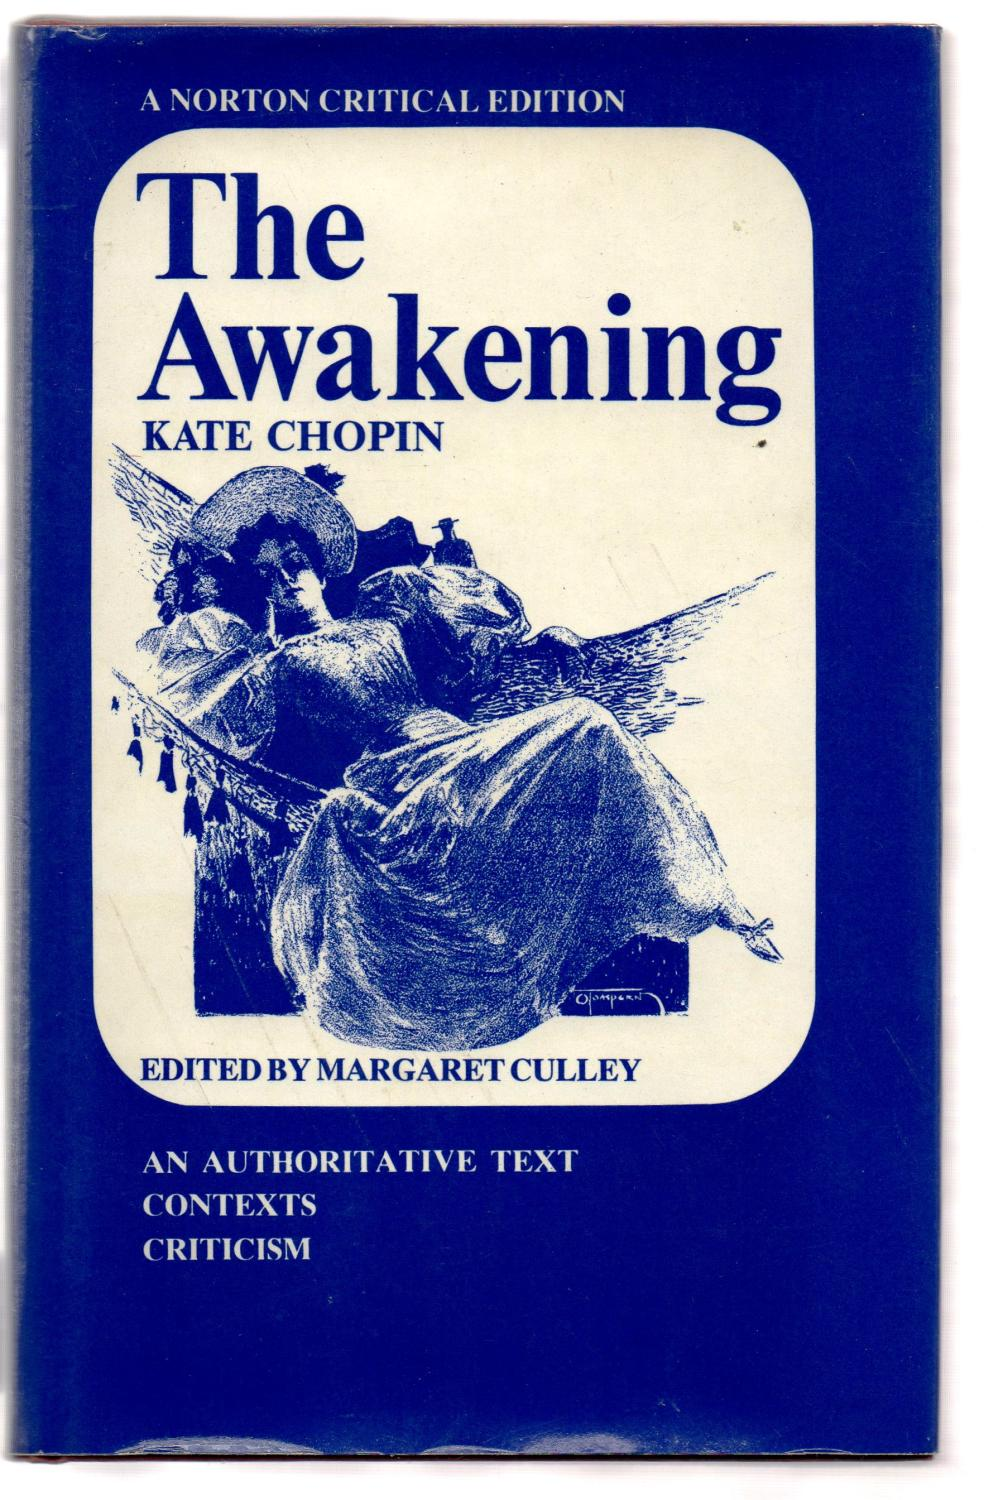 new essays on the awakening A summary of themes in kate chopin's the awakening learn exactly what happened in this chapter, scene, or section of the awakening and what it means perfect for acing essays, tests, and quizzes, as well as for writing lesson plans.